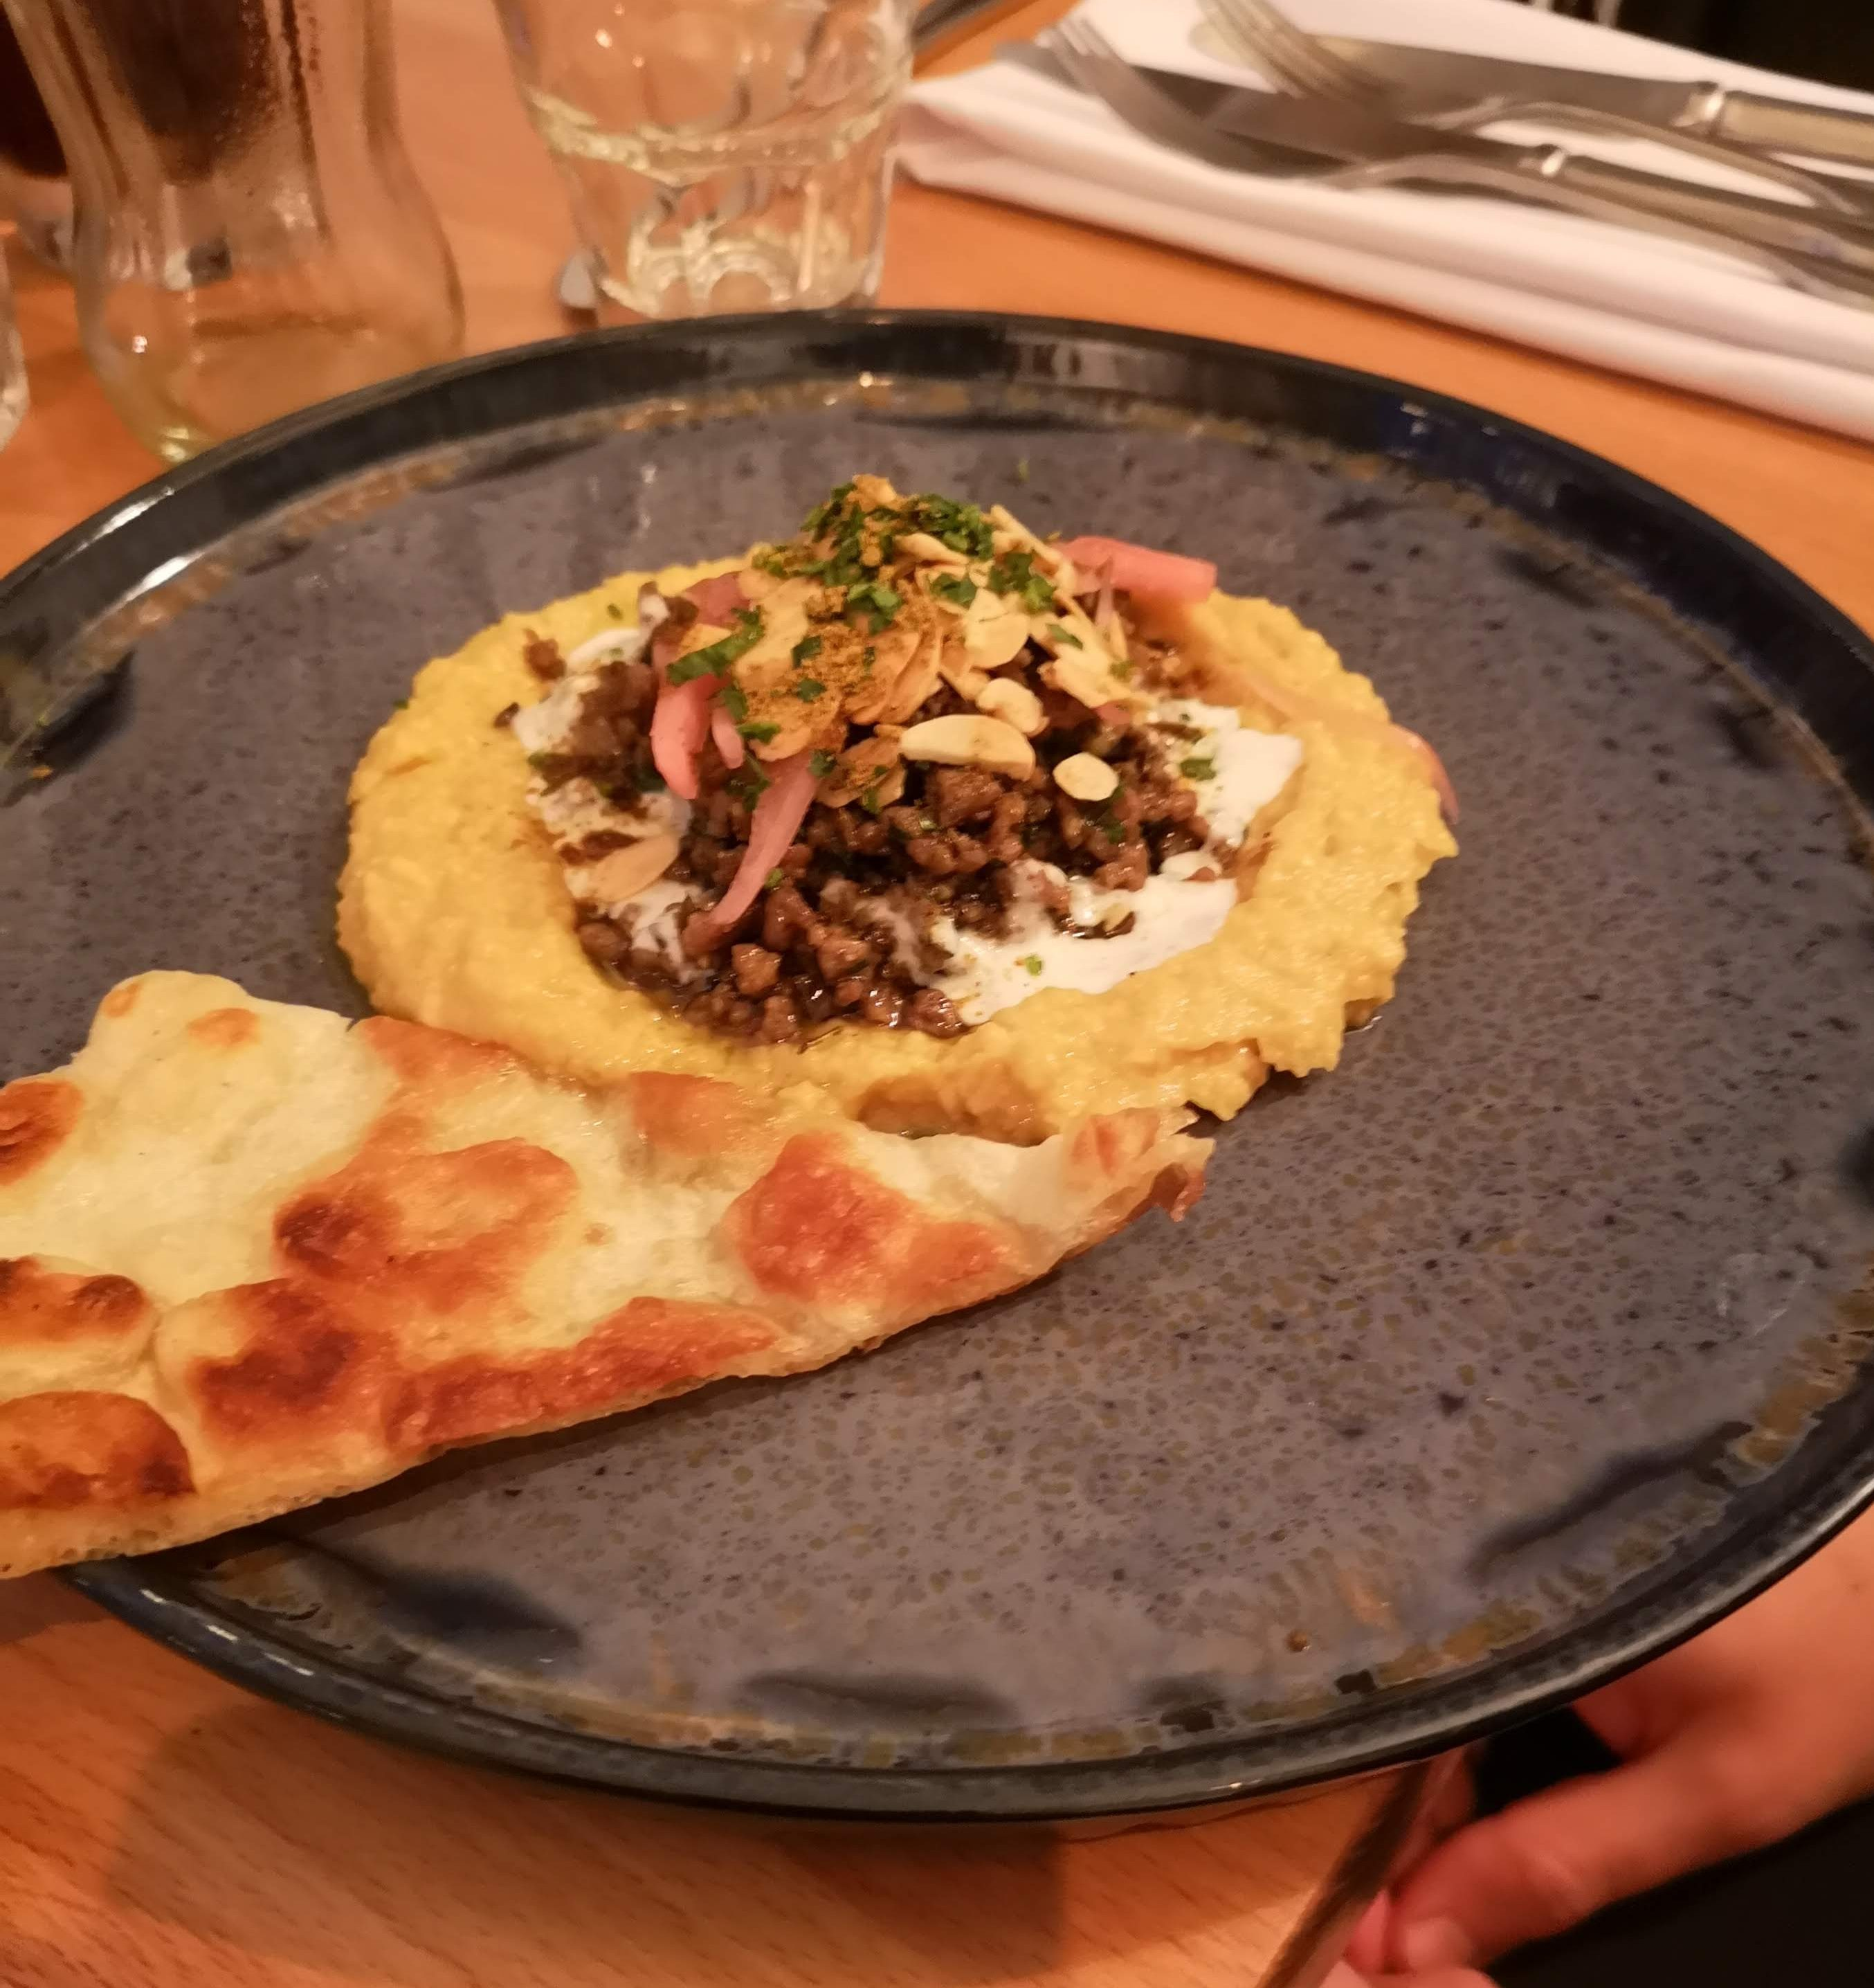 Morrocan spiced lamb, hummus, almond buttermilk on a lovely plate.